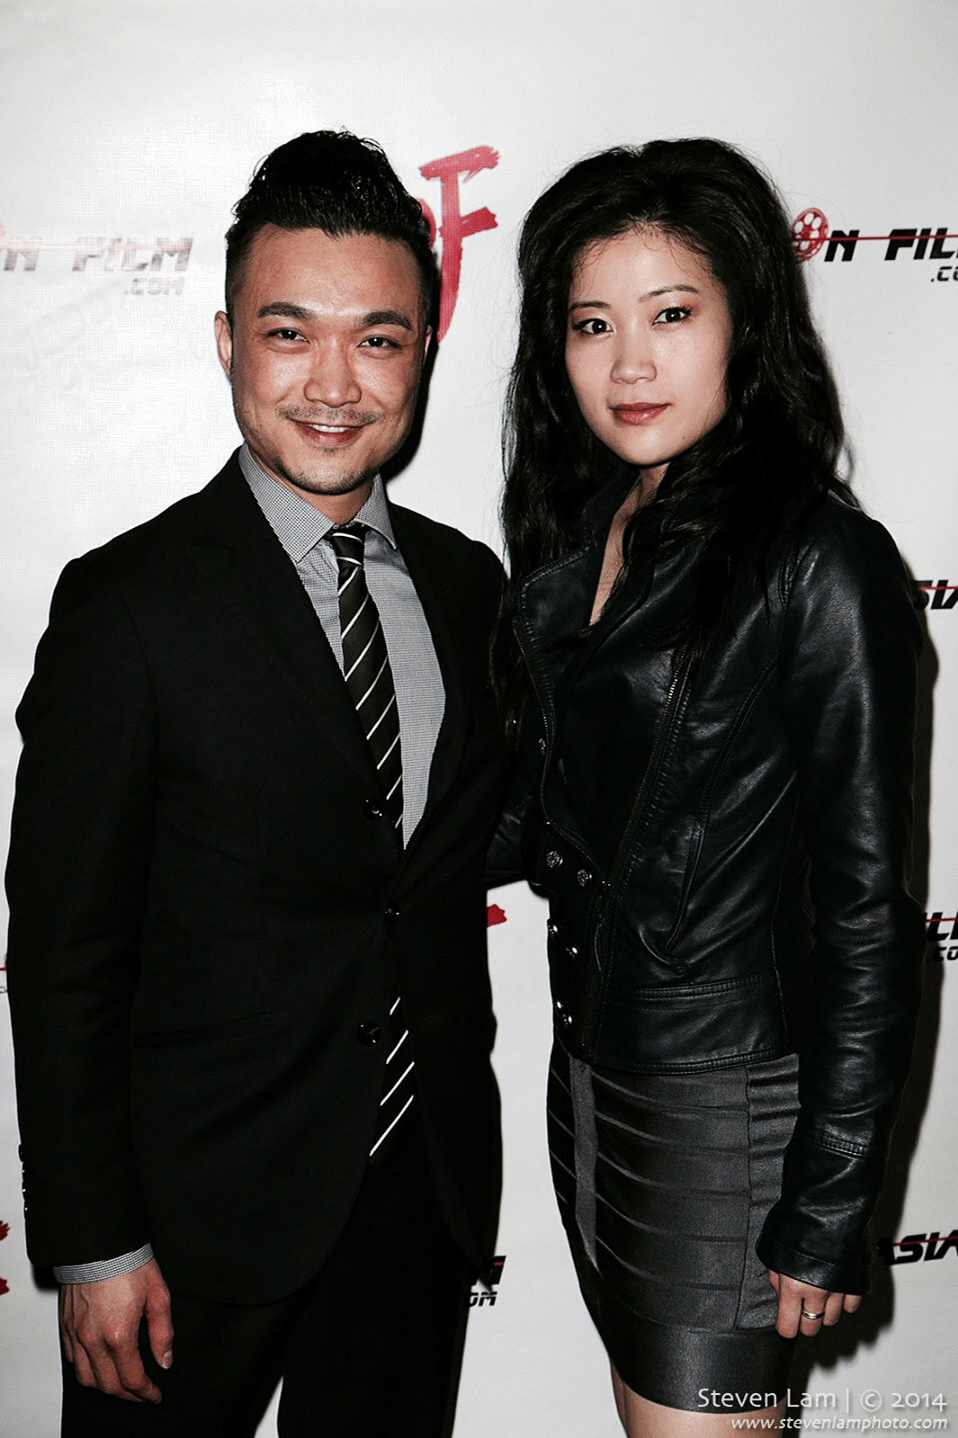 Norman Yeung and Jadyn Wong at HollyShorts/Asians On Film screening, TCL Chinese Theatre, Hollywood, 2014.